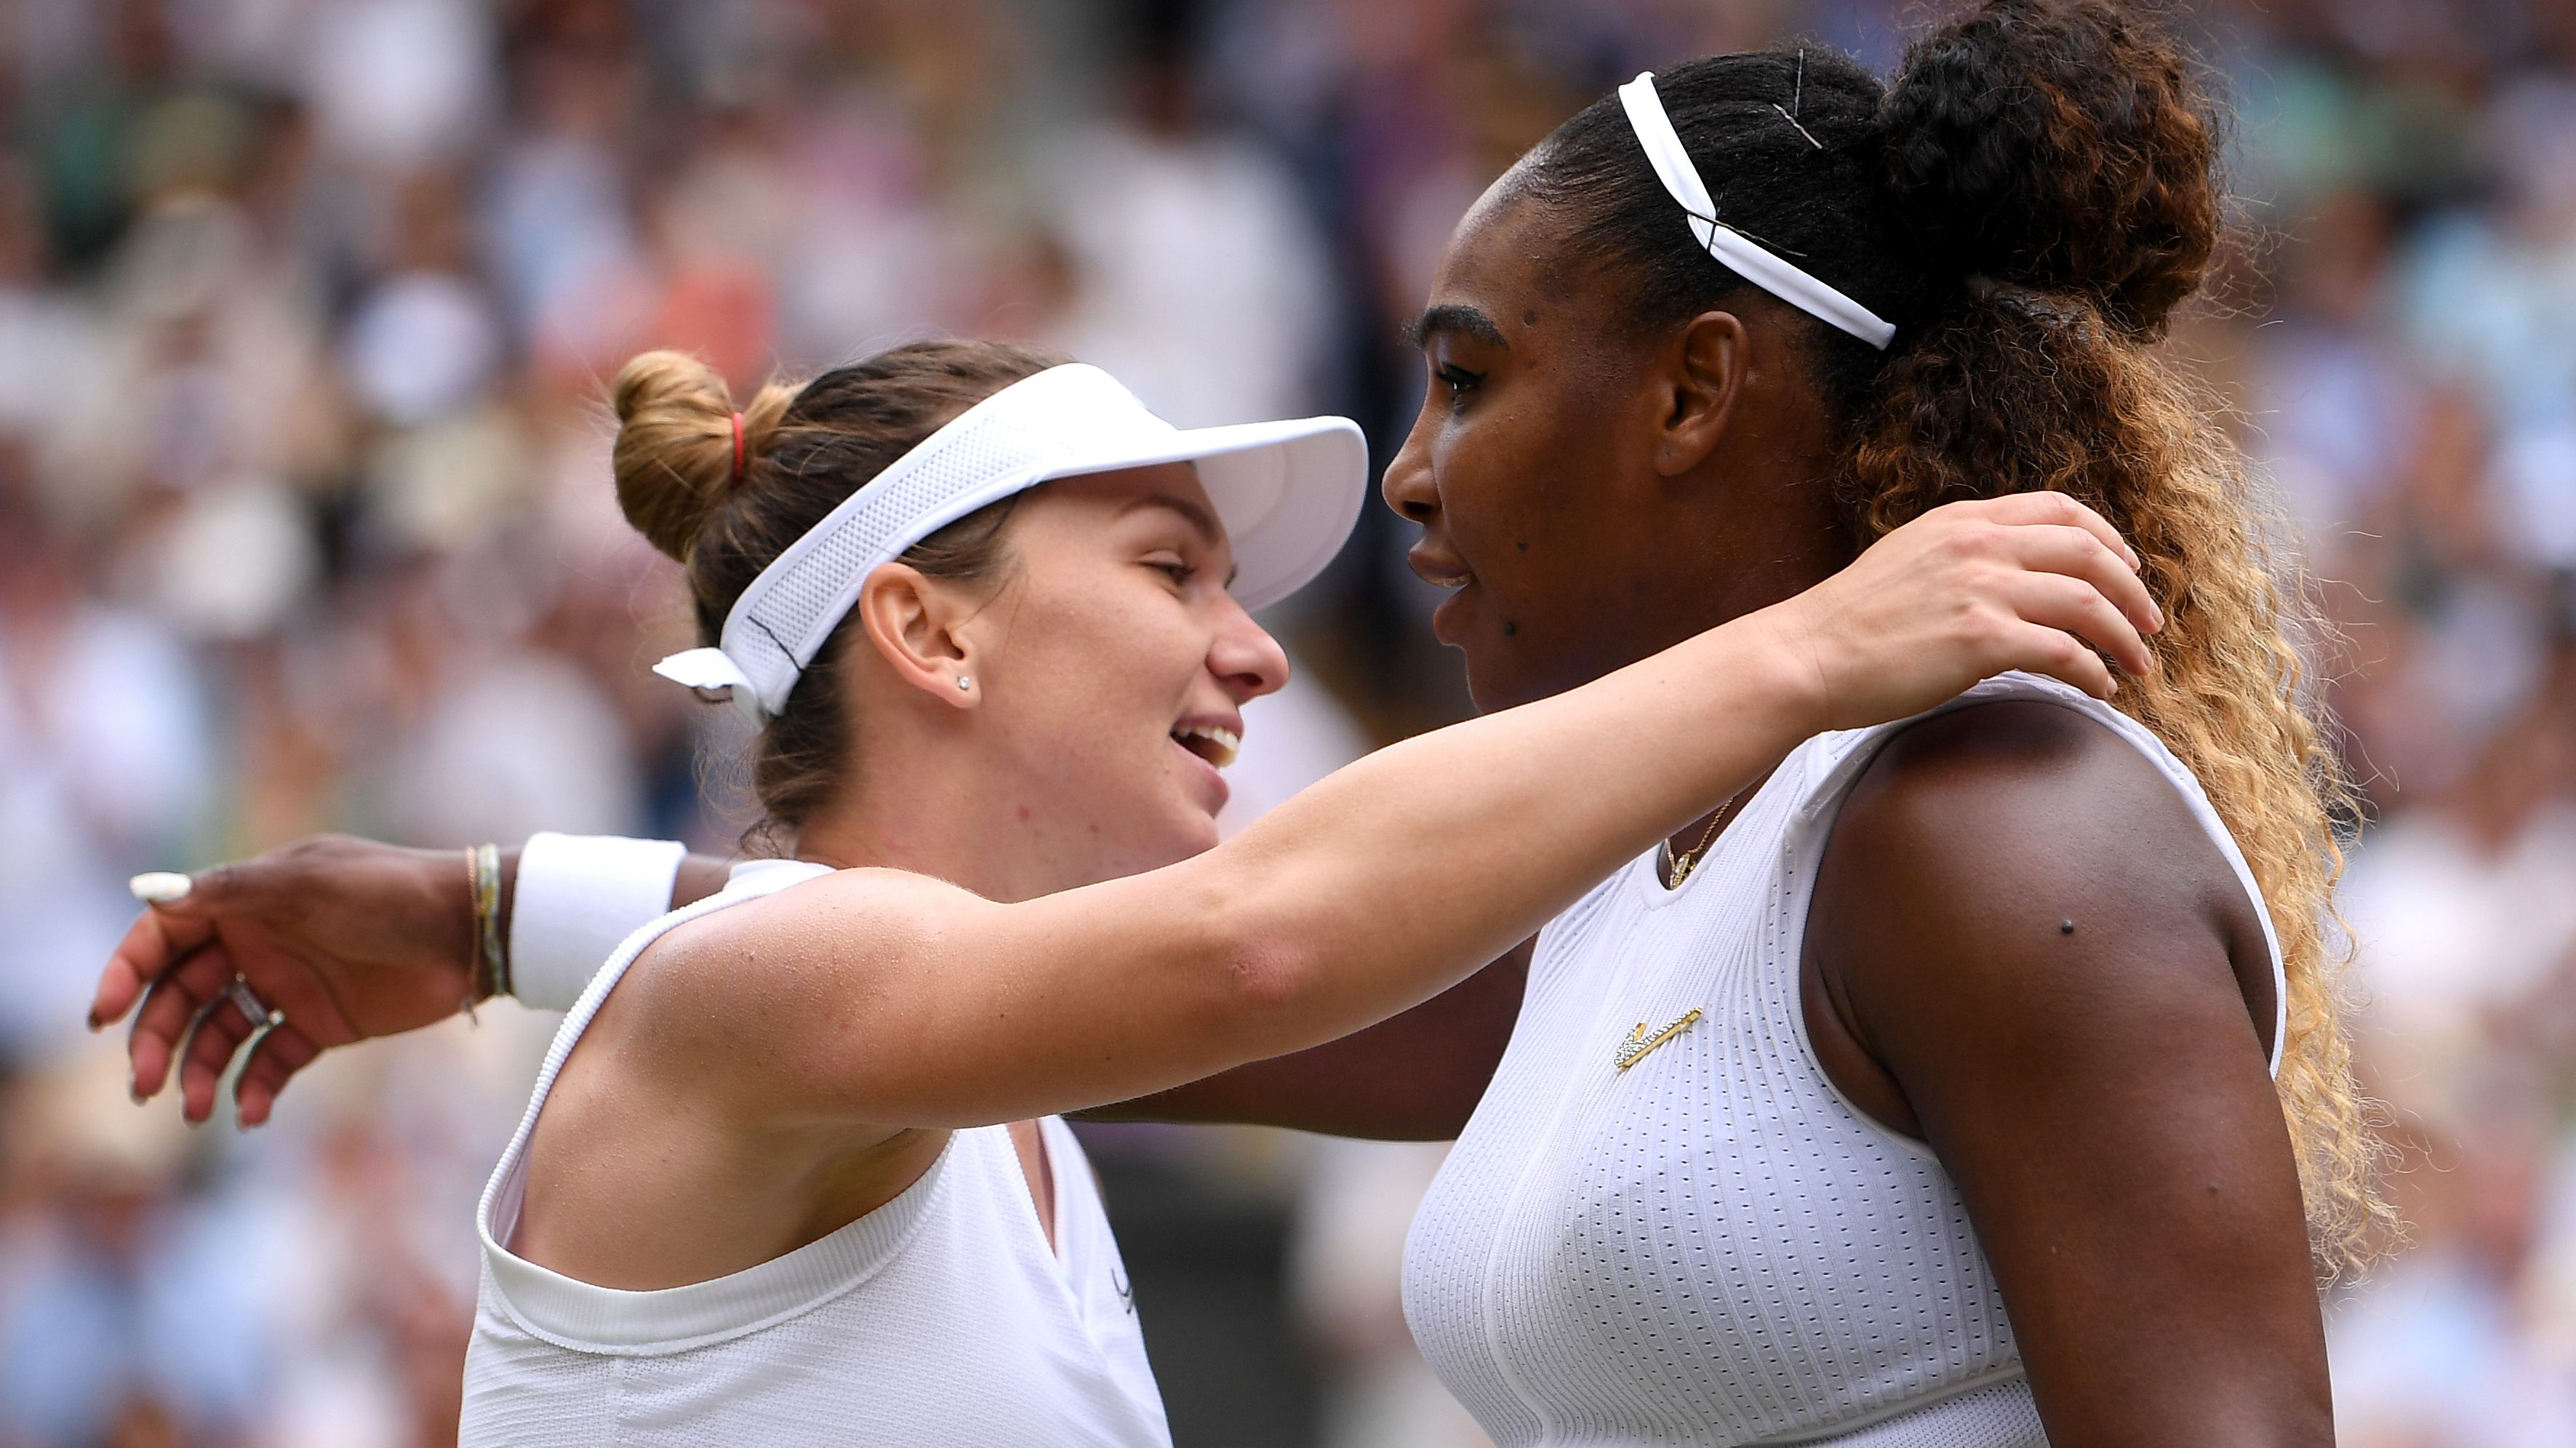 Simona Halep and Serena Williams embrace at the end of the 2019 Wimbledon final.